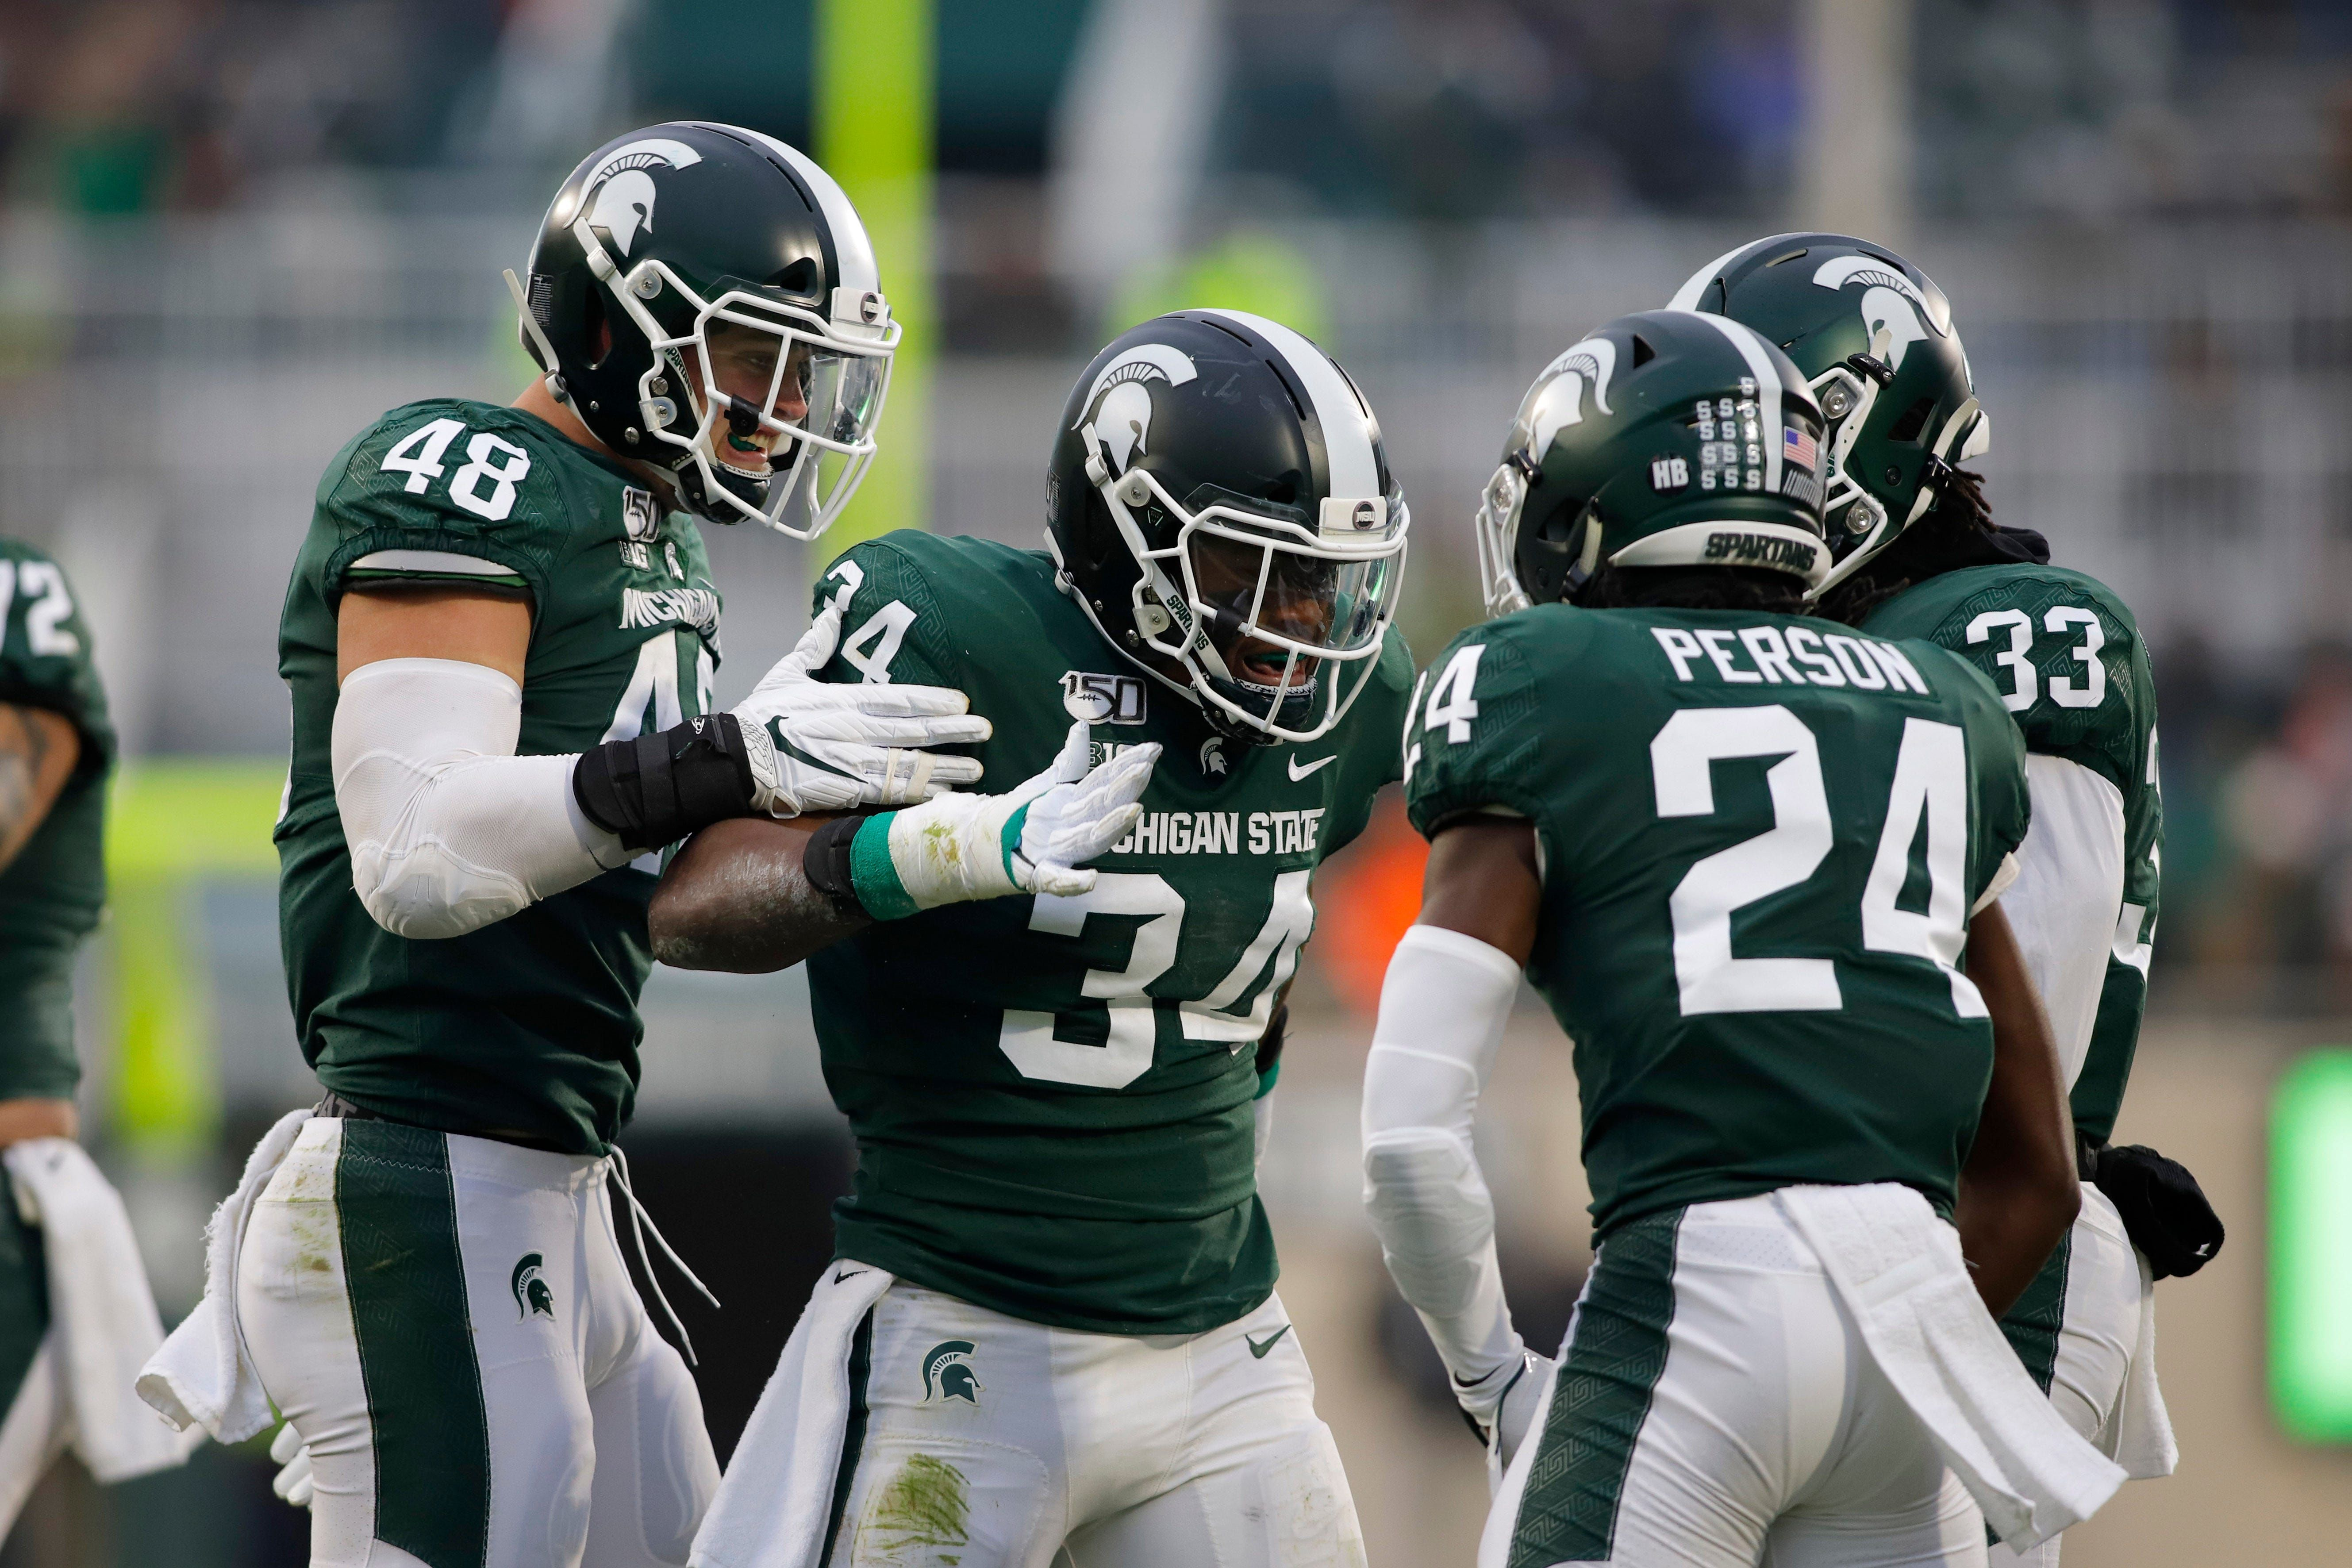 Michigan State S Offense Struggles But Finds Way To Beat Maryland Becomes Bowl Eligible Michigan State Football Michigan State Michigan State Spartans Football